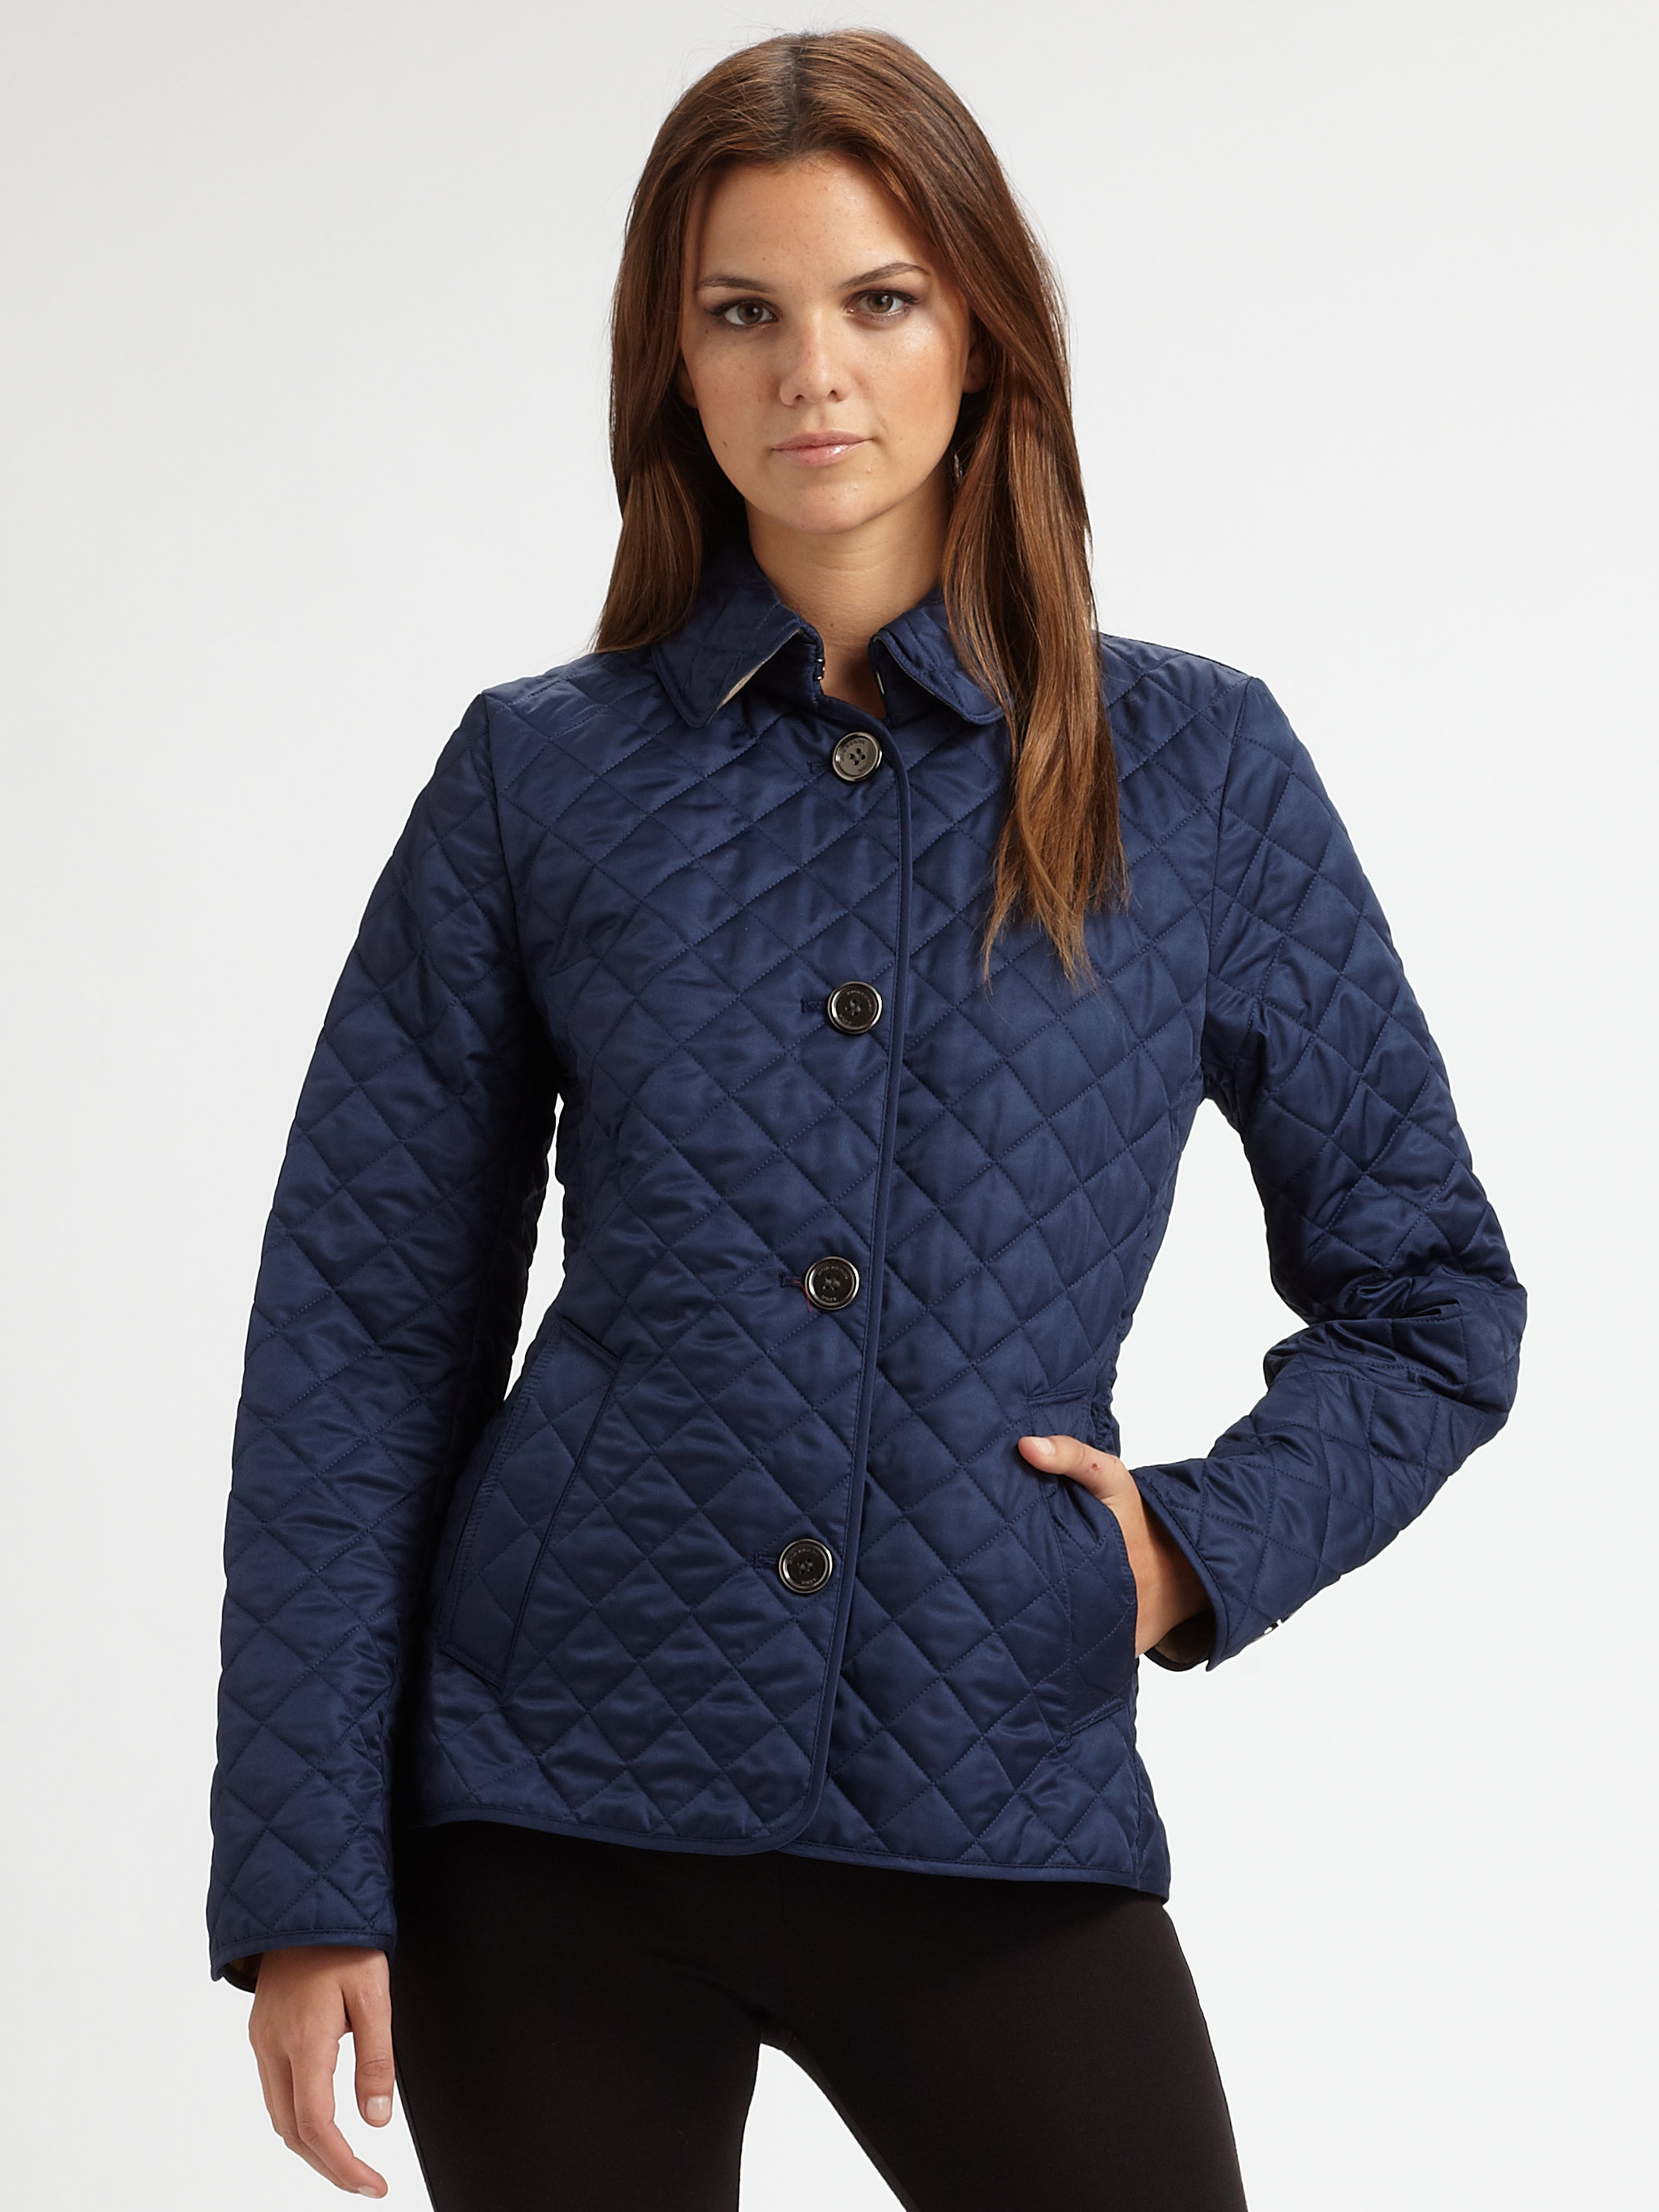 Lyst - Burberry brit 'copford' Quilted Jacket in Blue : copford quilted jacket - Adamdwight.com